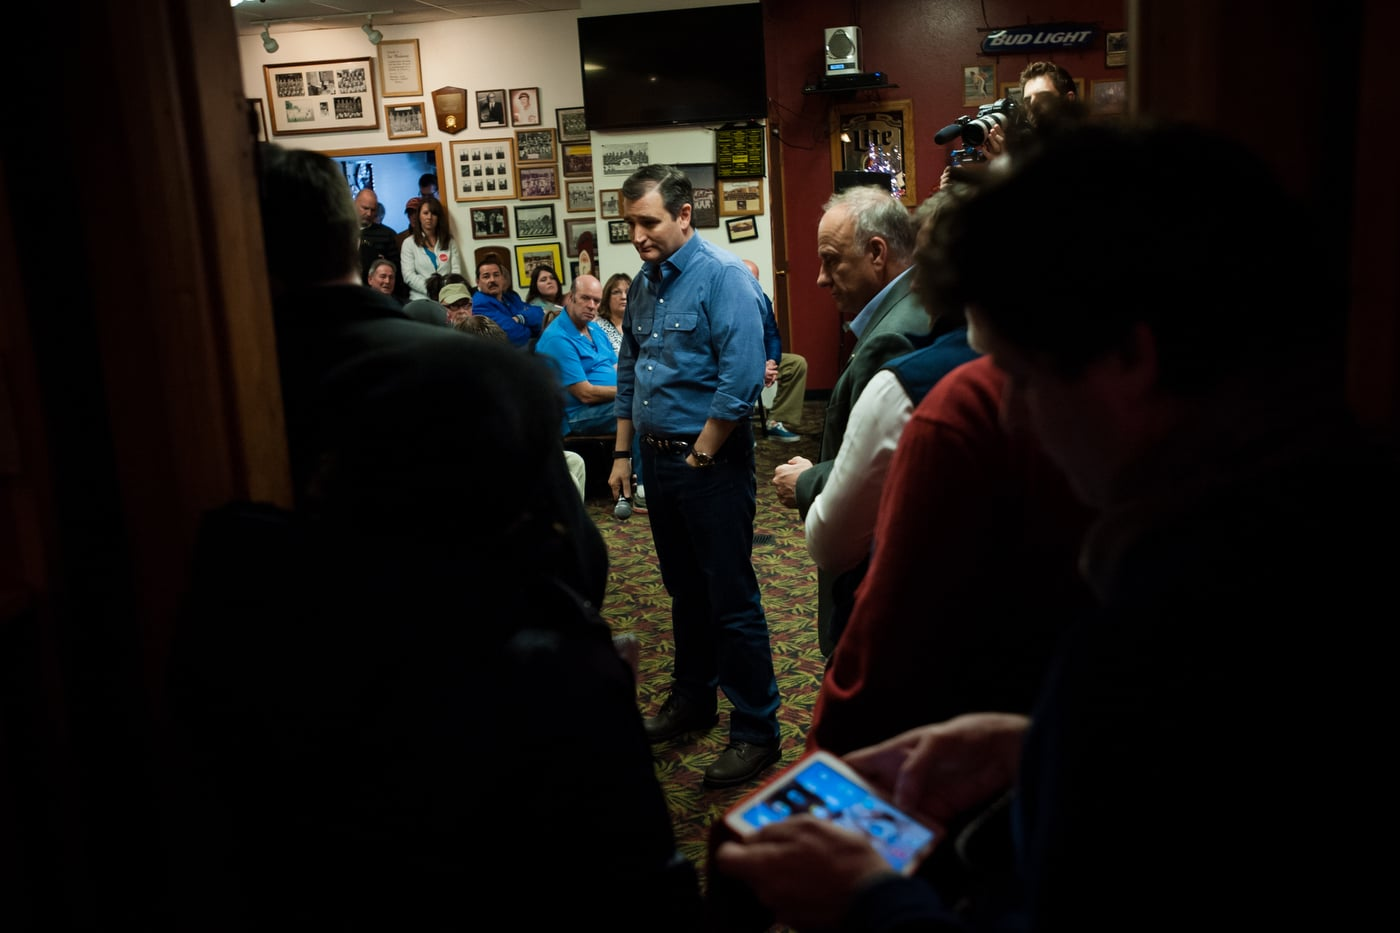 U.S. Republican presidential candidate Ted Cruz speaks at a campaign stop at Danny's Sports Spot in Cherokee, Iowa January 5, 2016. REUTERS/Mark Kauzlarich